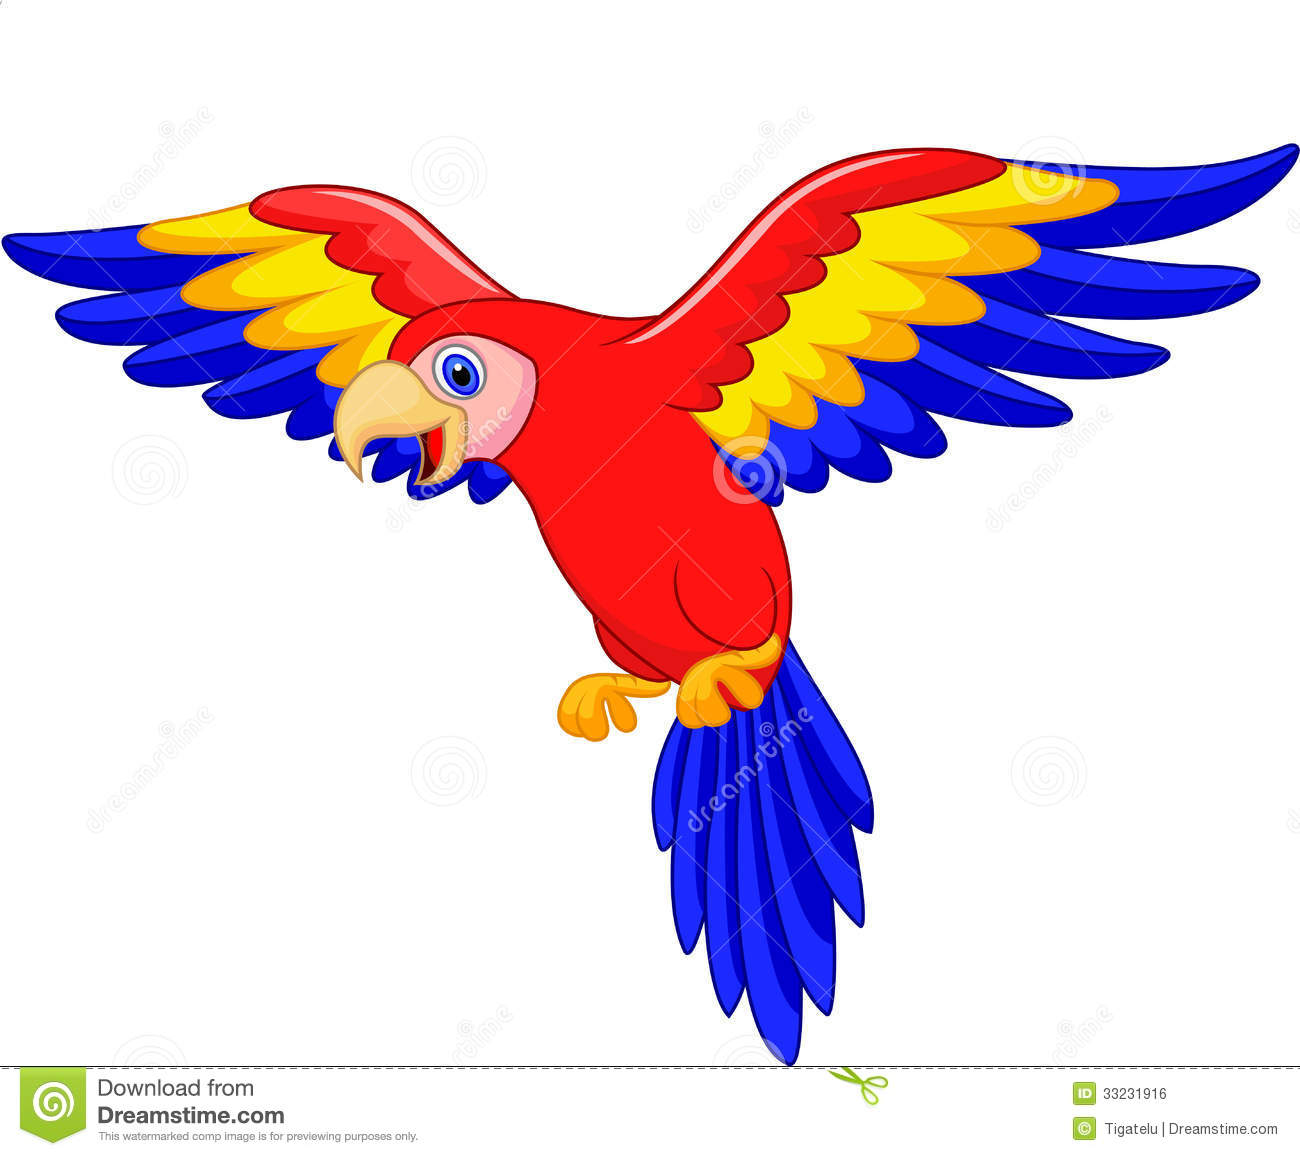 Scarlet Macaw clipart animated #4